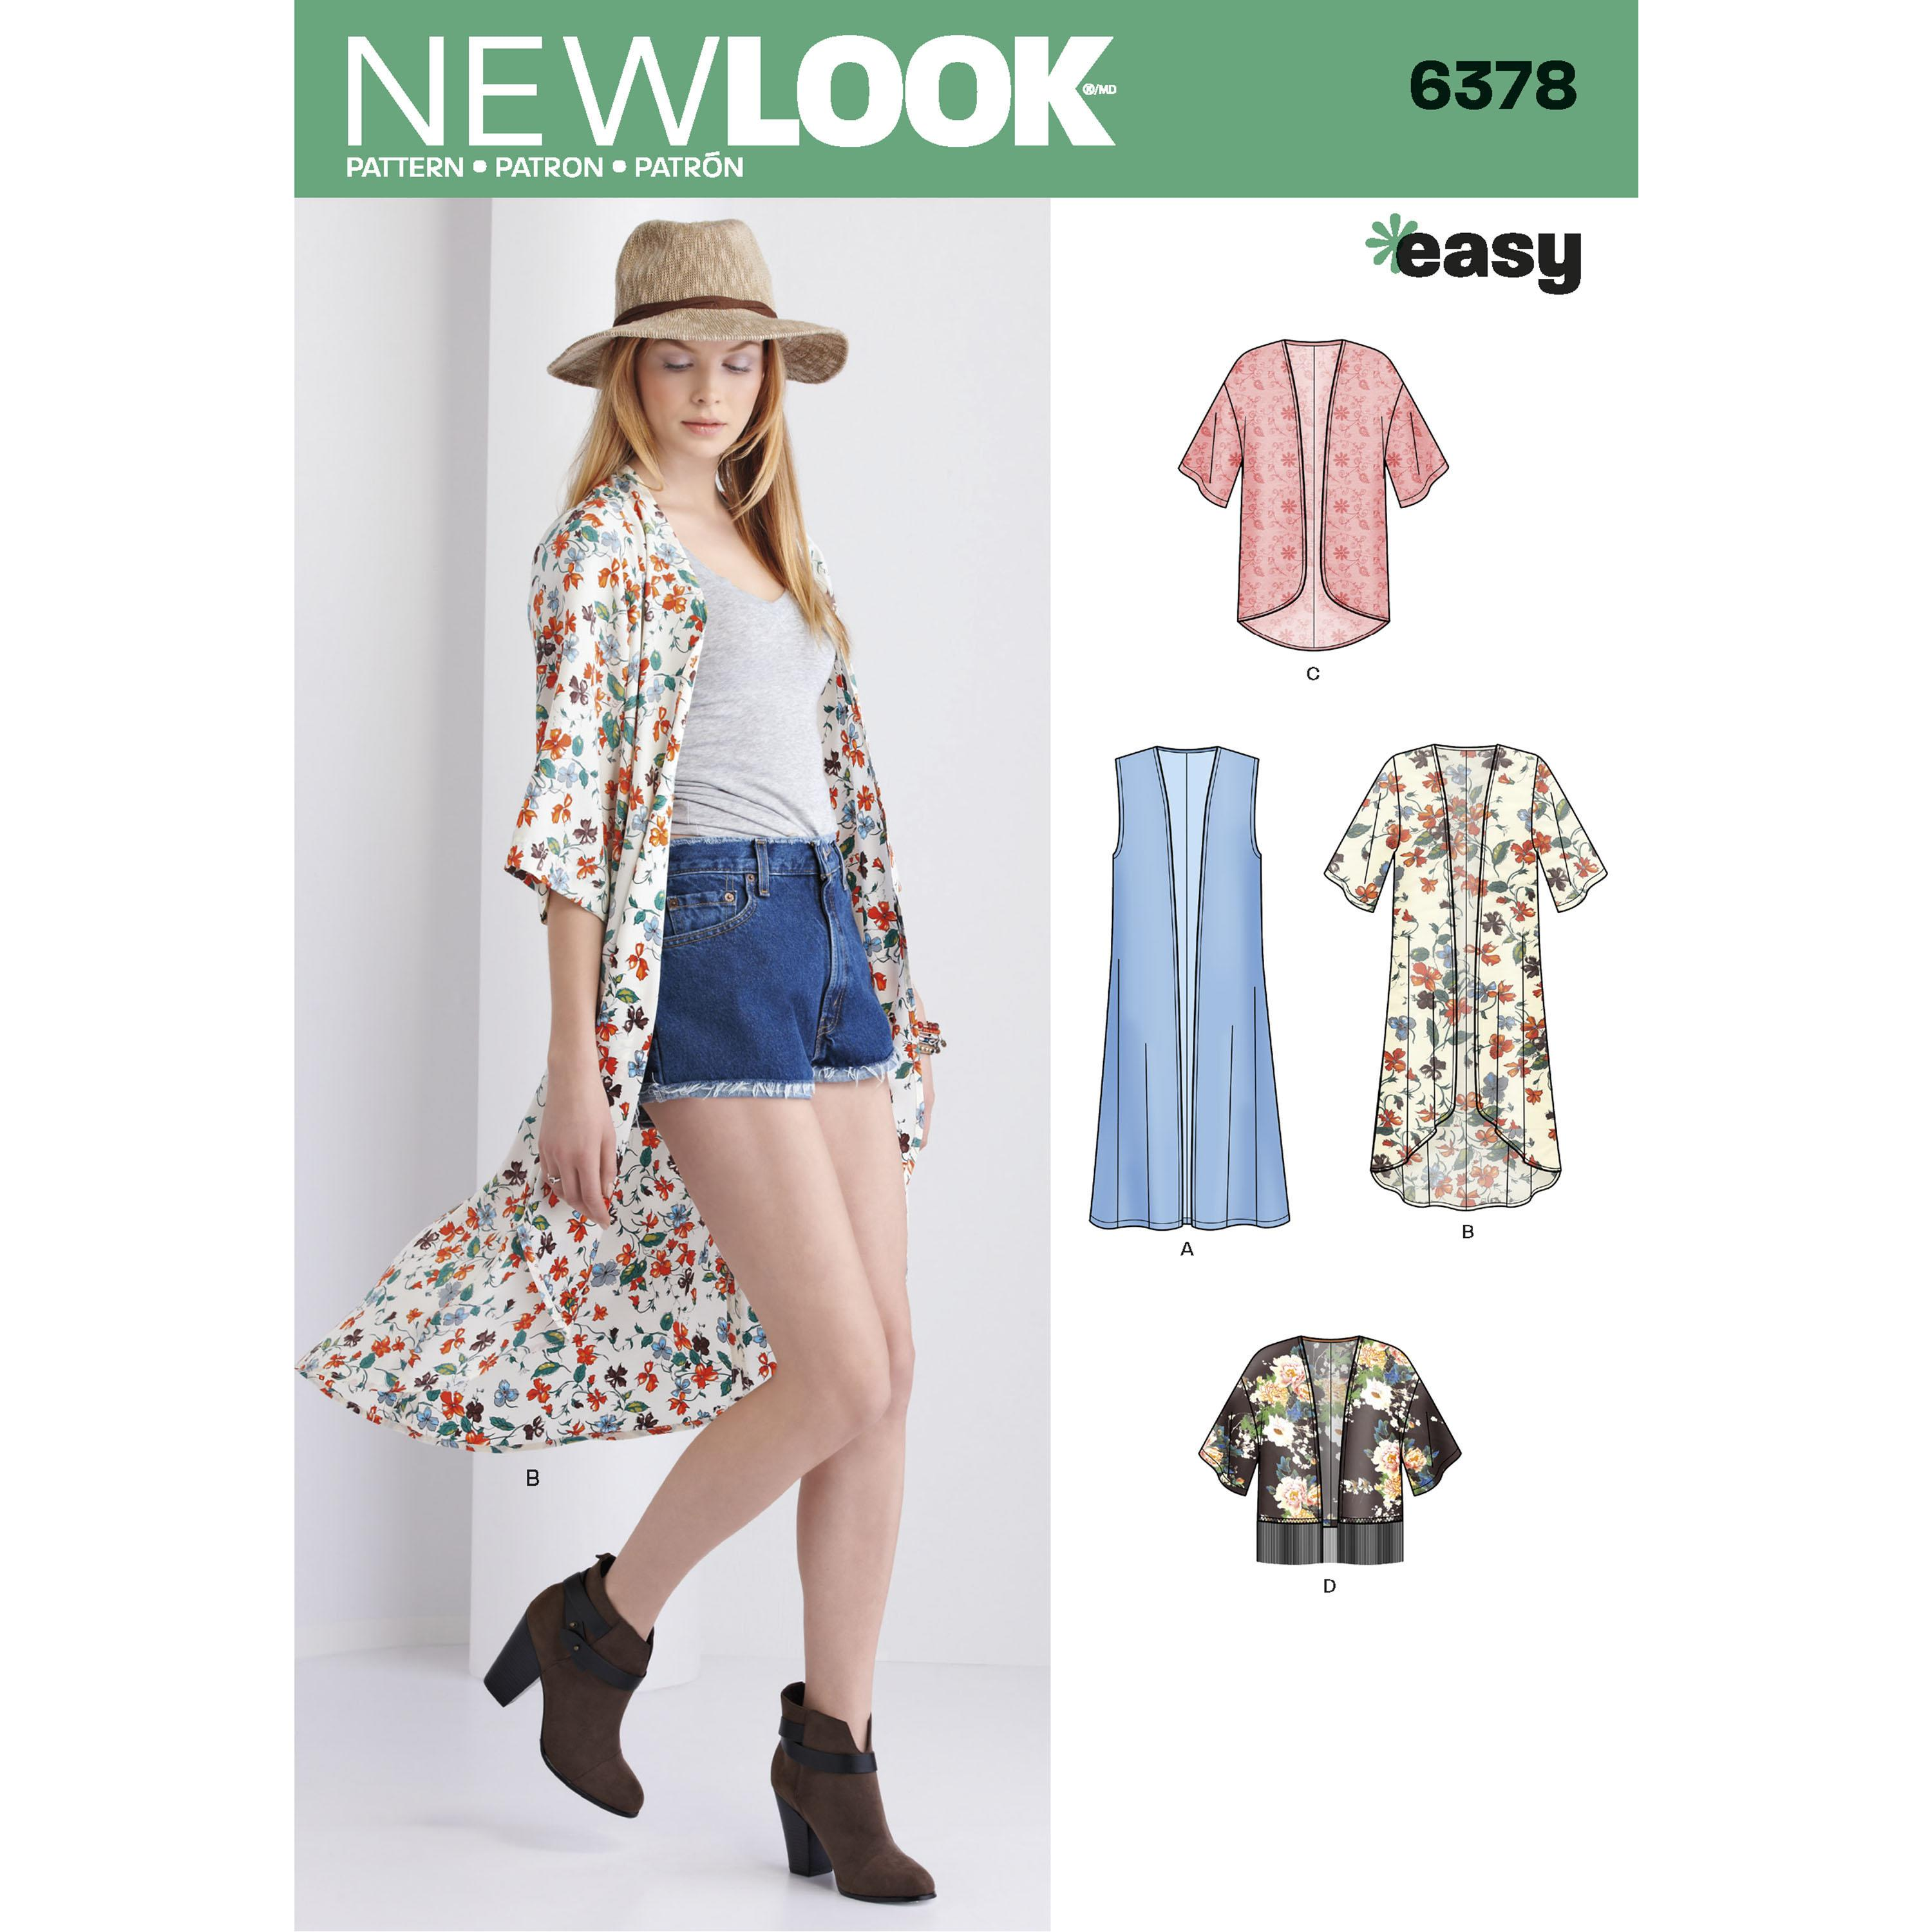 NewLook N6378 Misses' Easy Kimonos with Length Variations